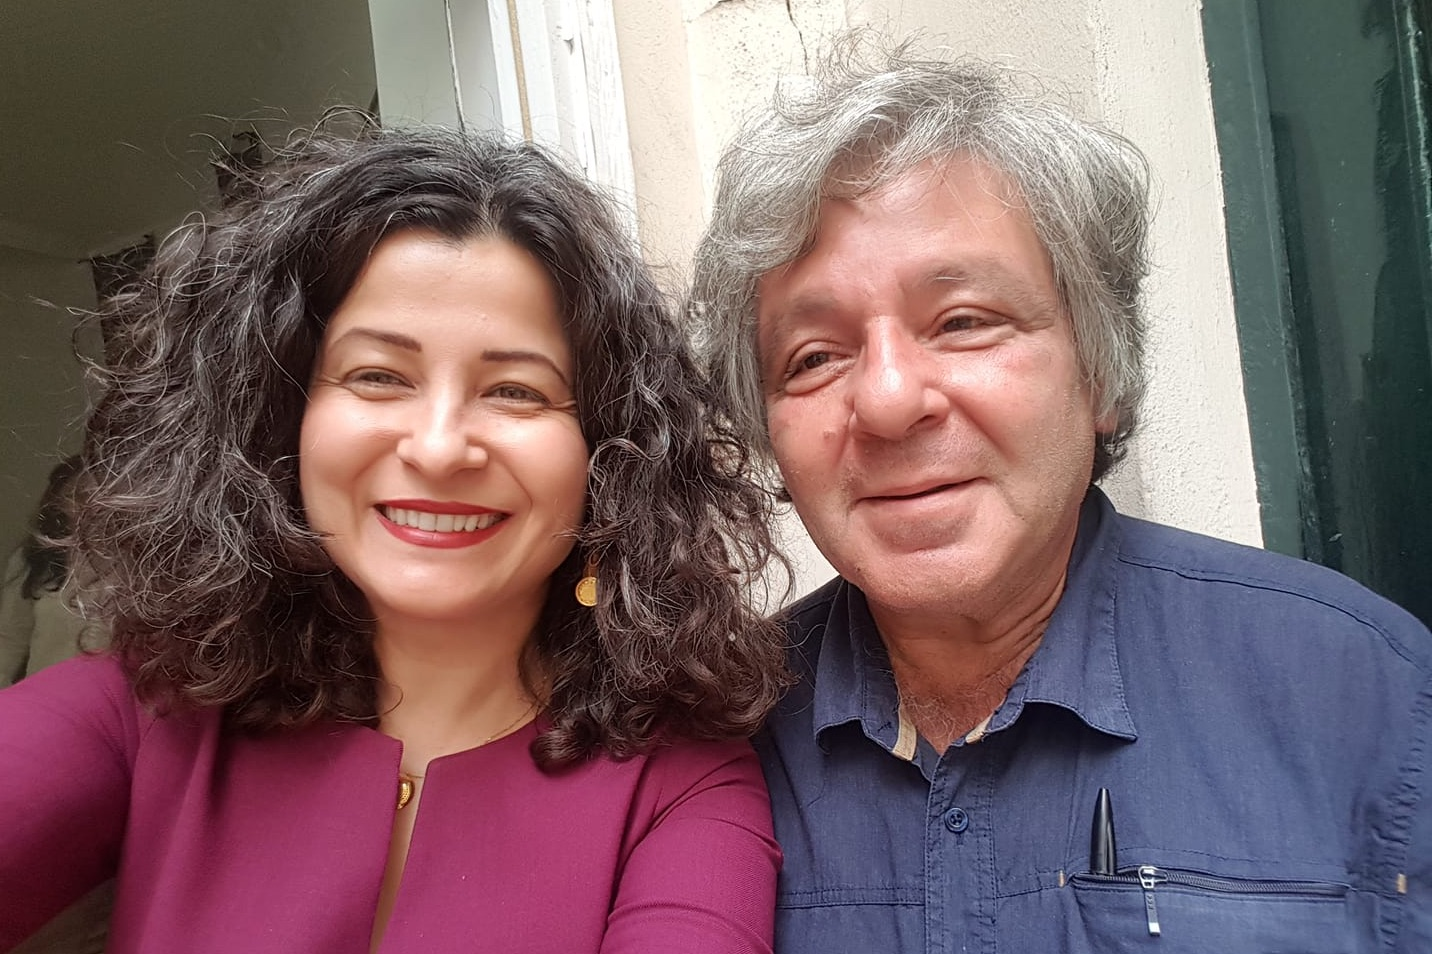 With Hamit Bozarslan at the at the Kurdish Institute's Summer School